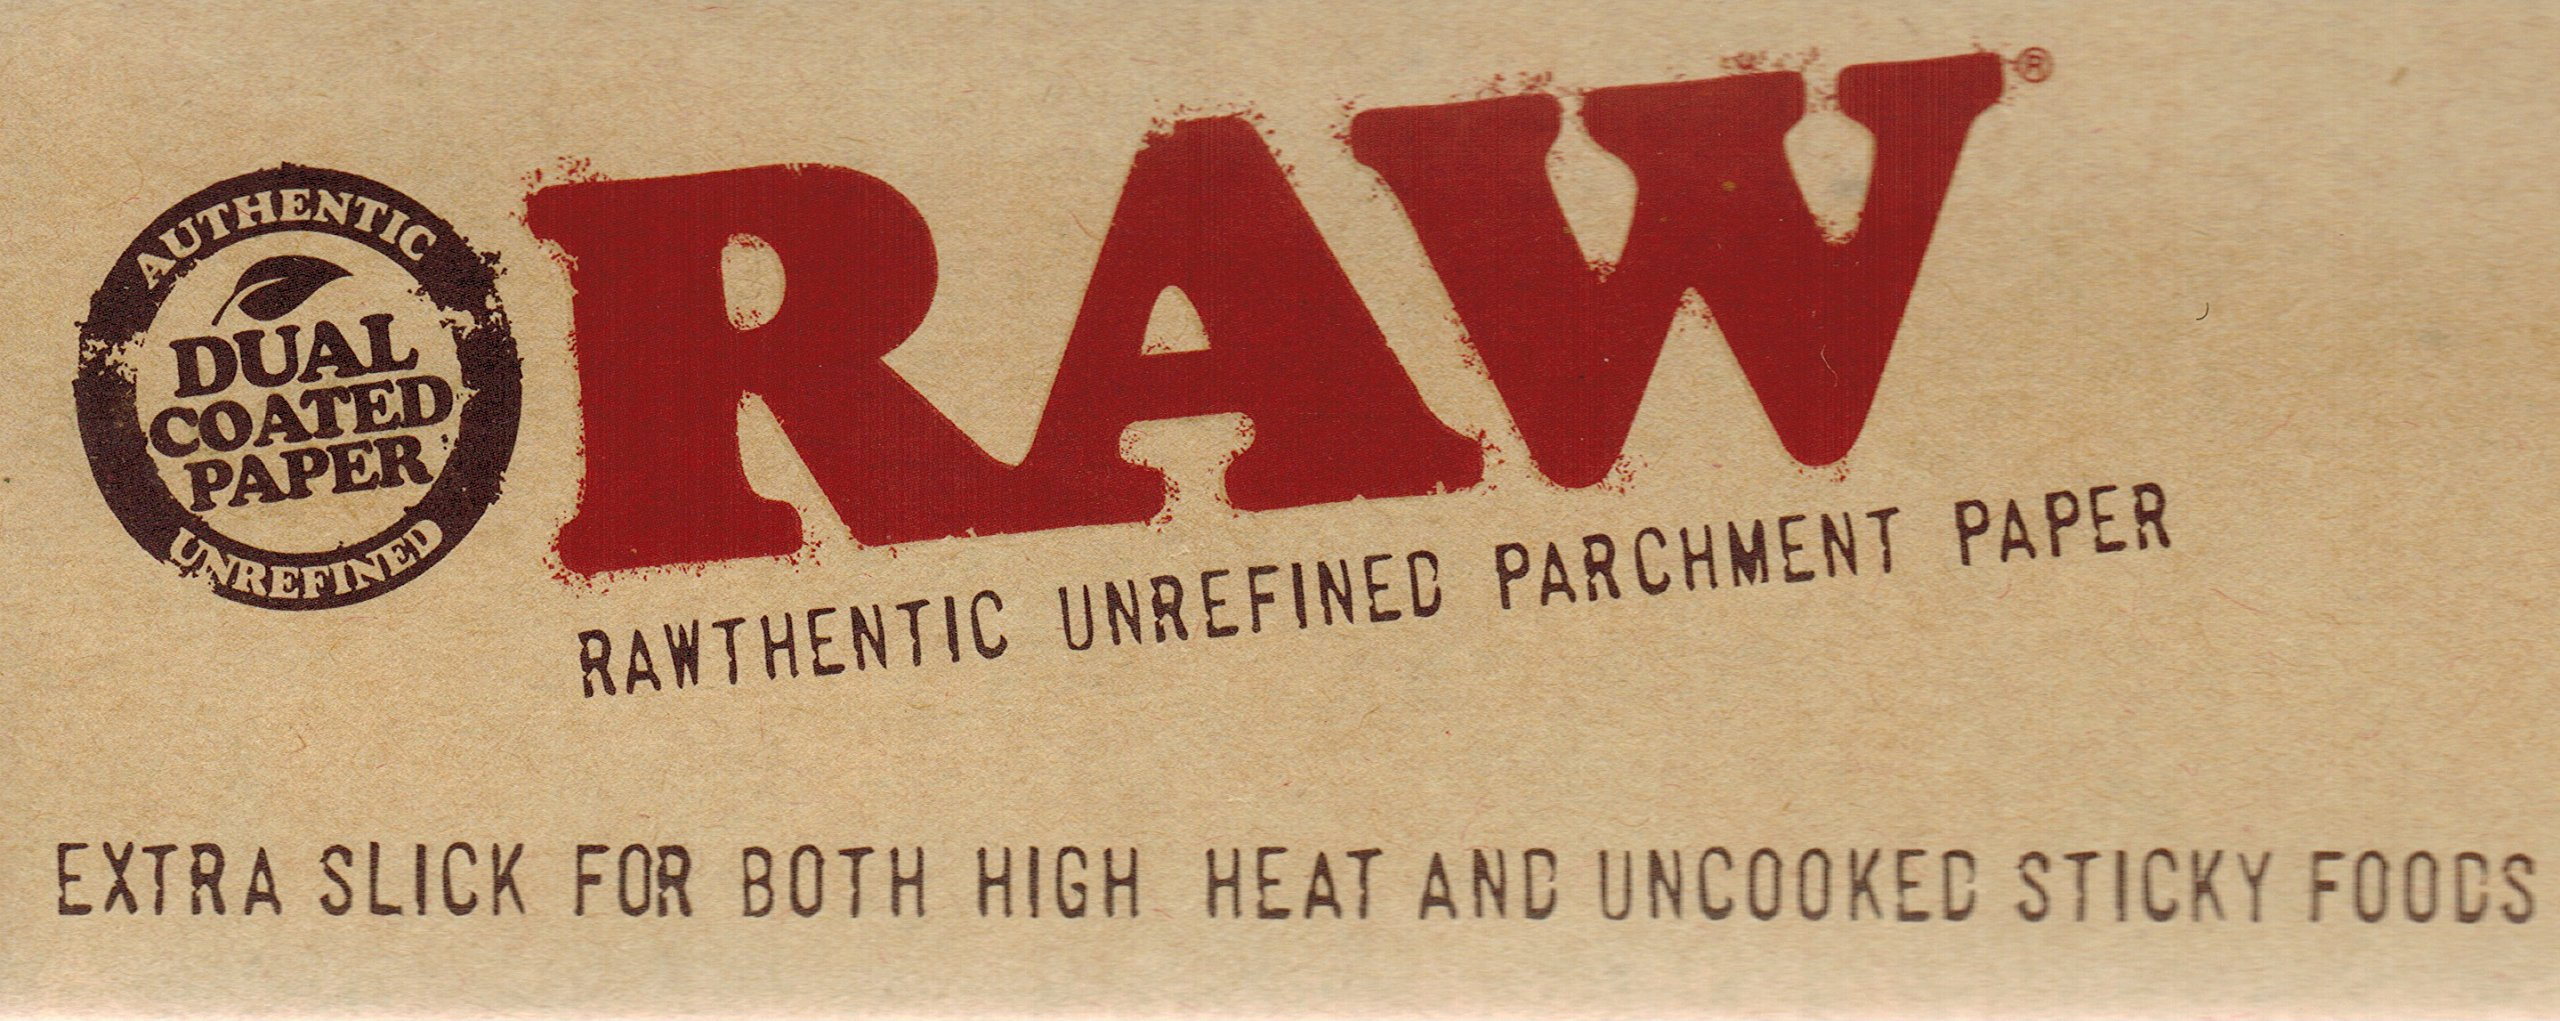 RAW Unrefined Parchment Paper Roll (12 roll display box, 100mm size) by RAW (Image #2)